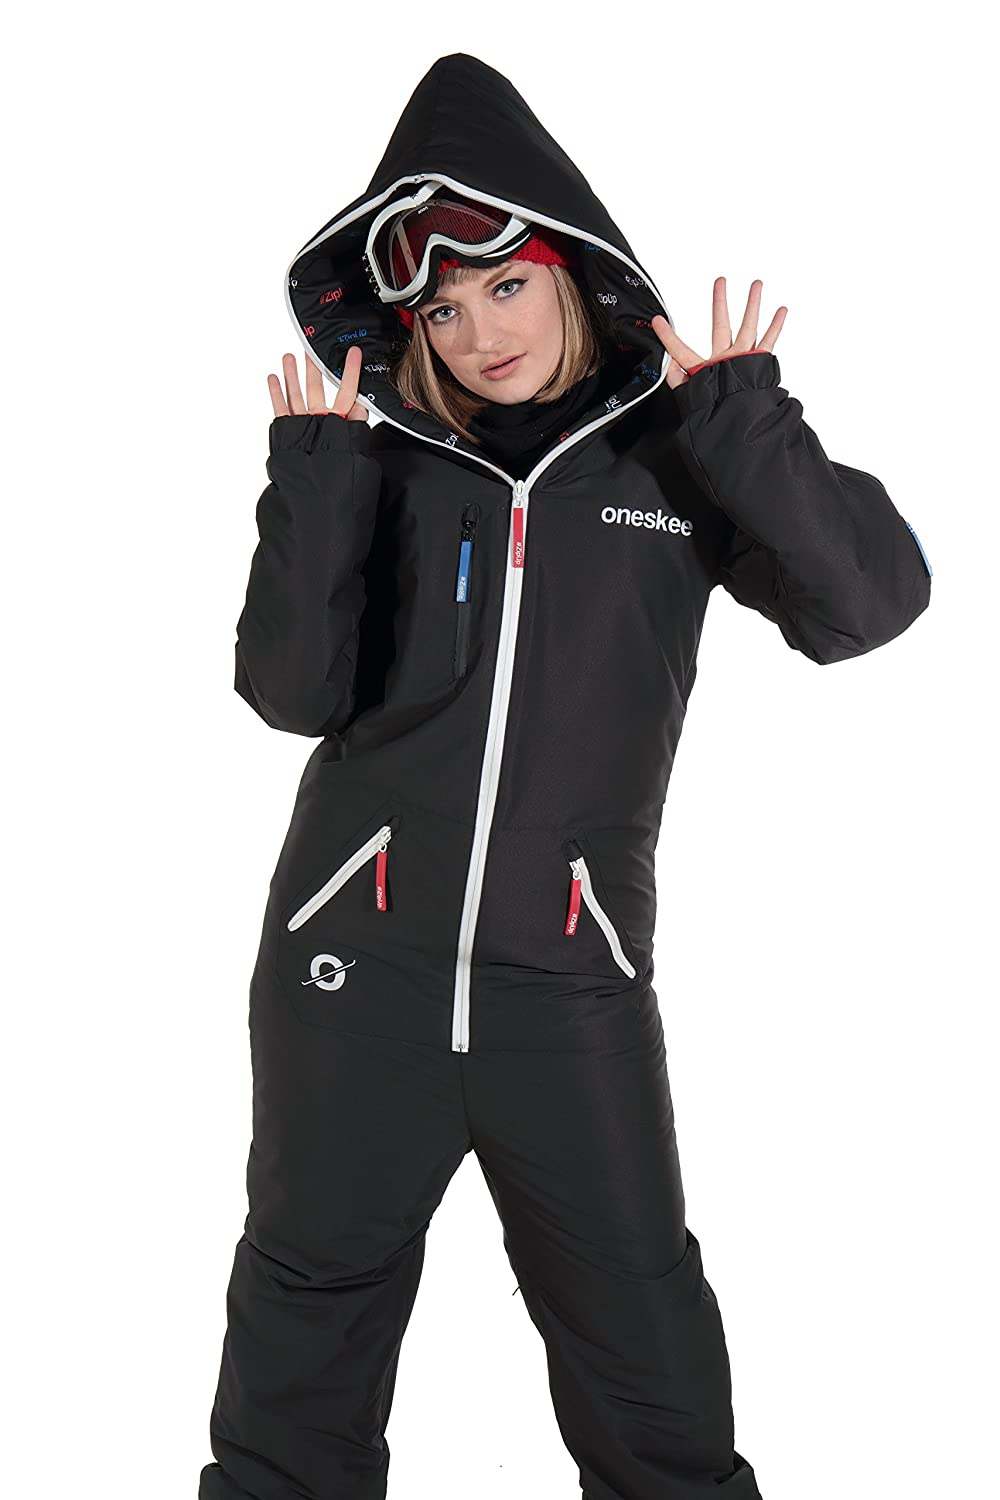 Oneskee Original Jet Black XL Retro All in One Ski Suit - One Piece padded  waterproof womens ski wear  Amazon.ca  Sports   Outdoors 6e53bec31